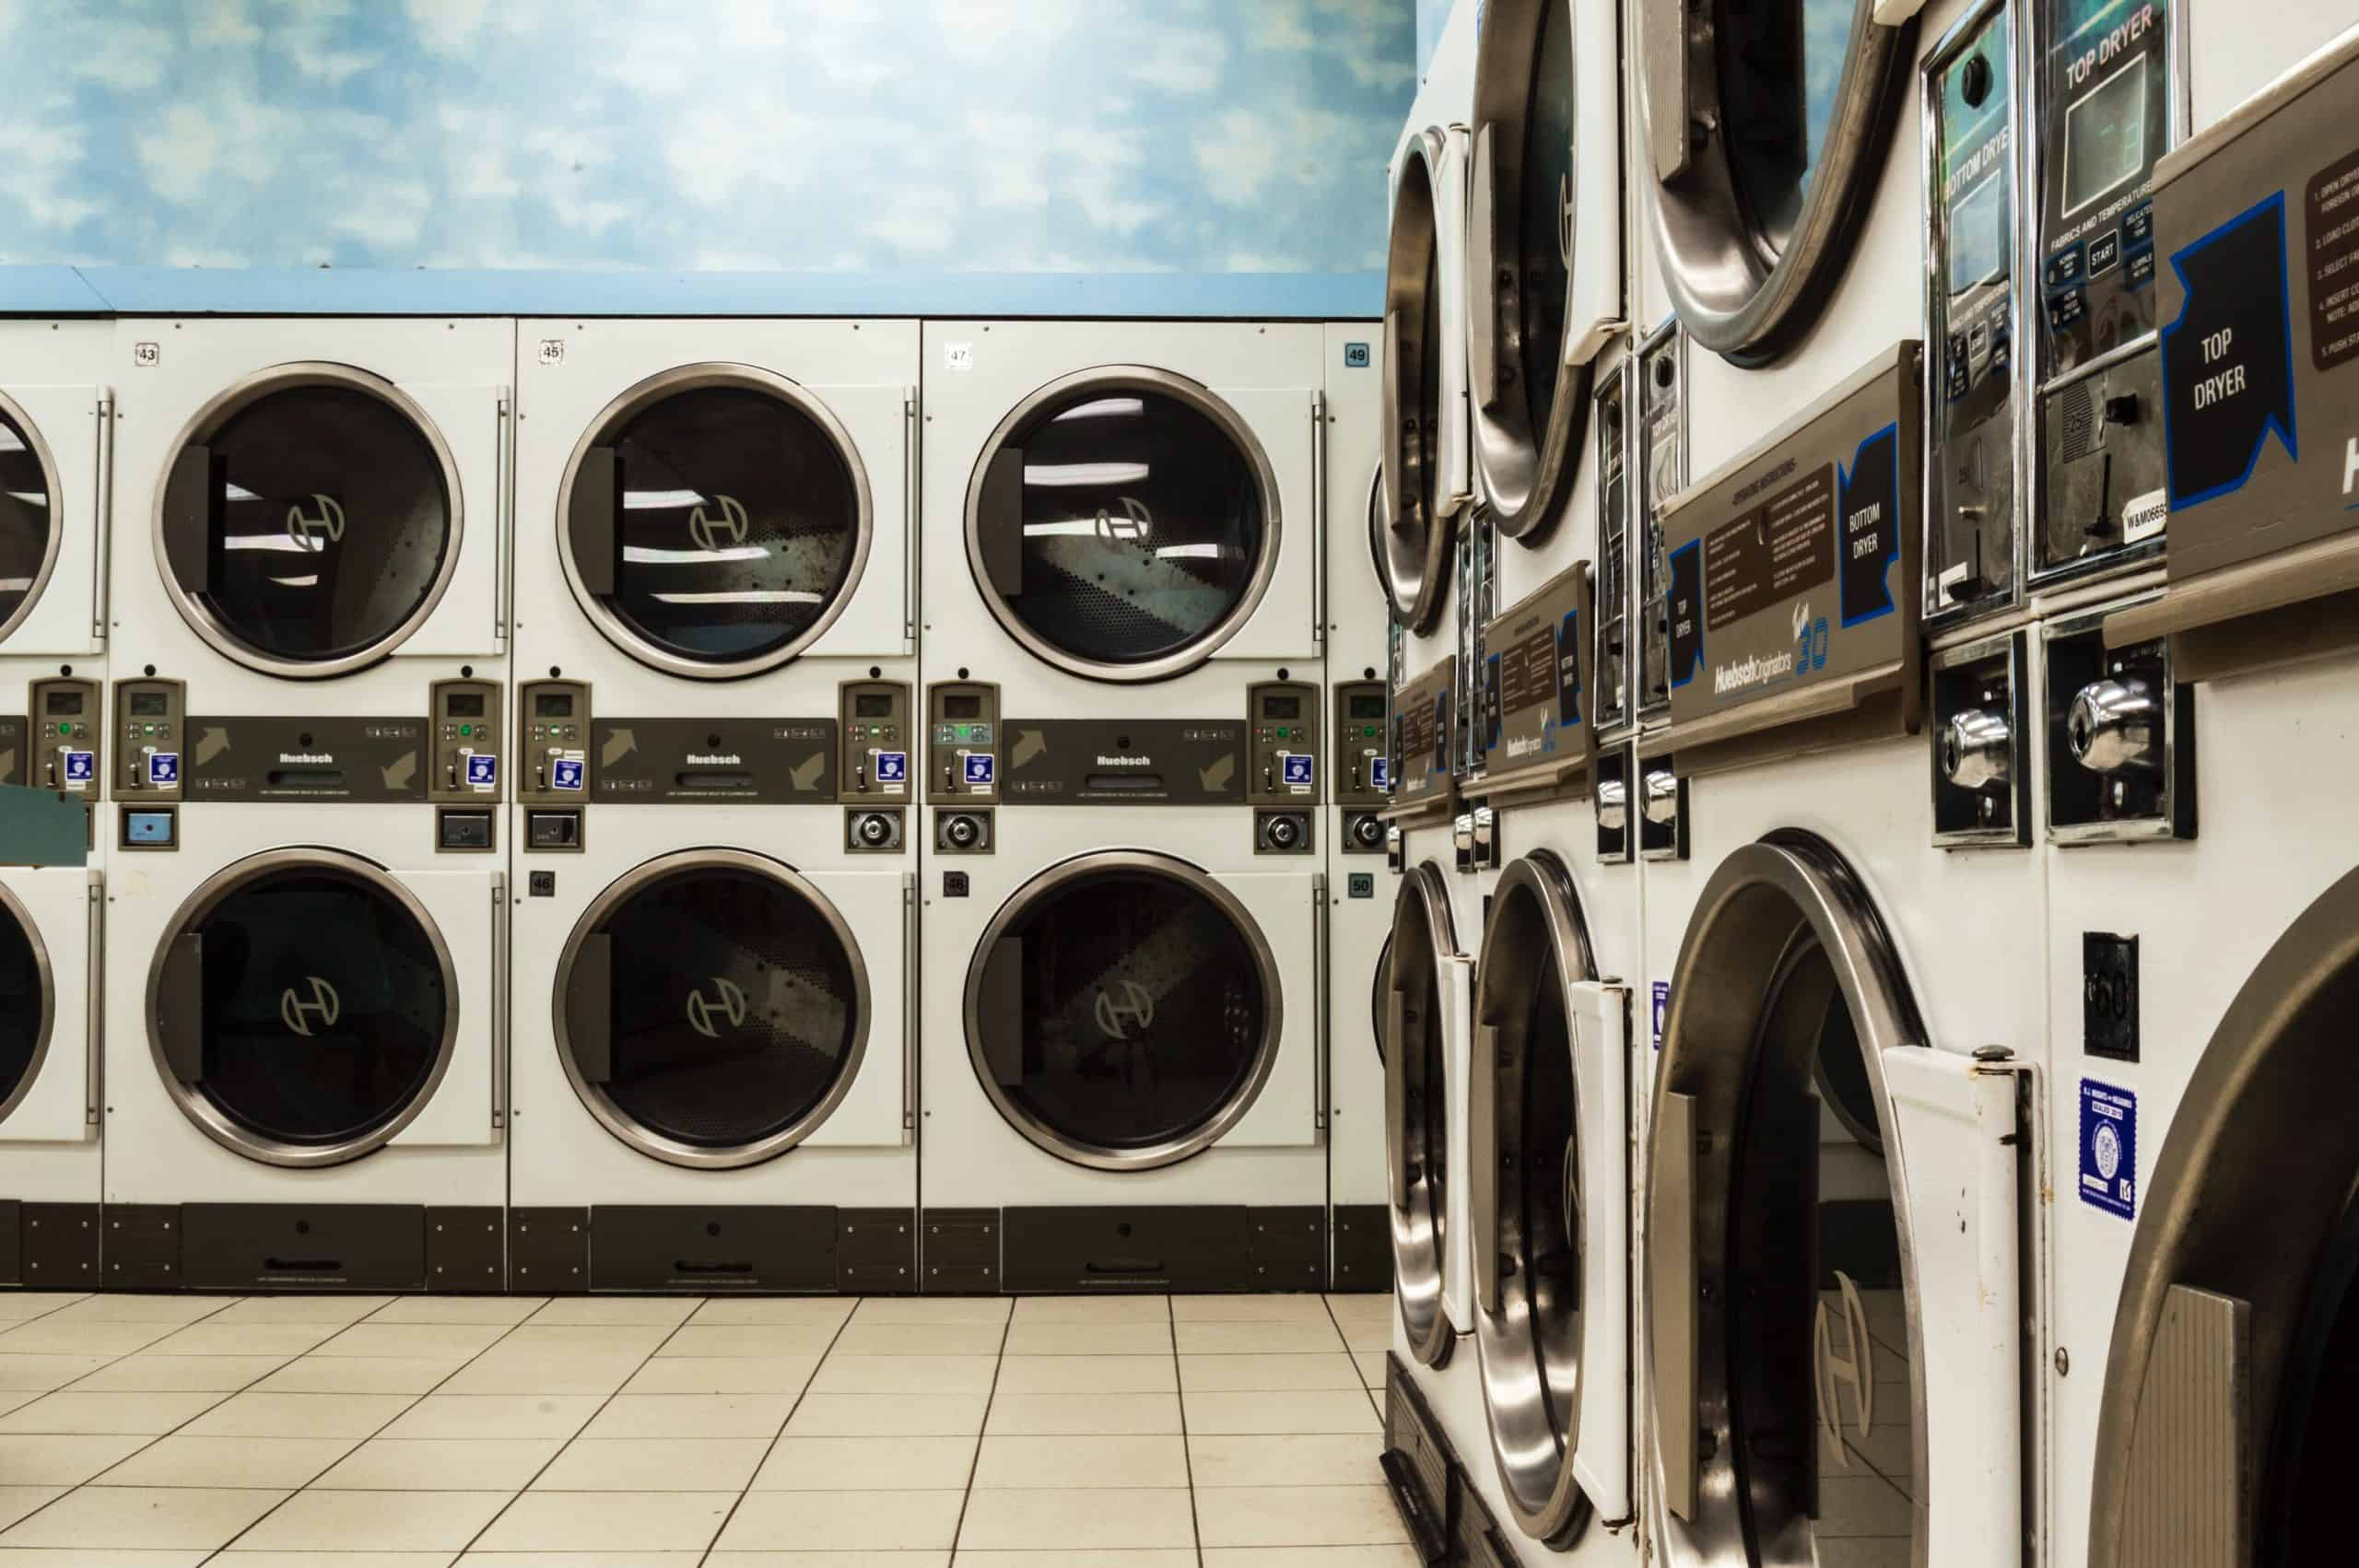 save money on laundry - laundromat row of washers and dryers